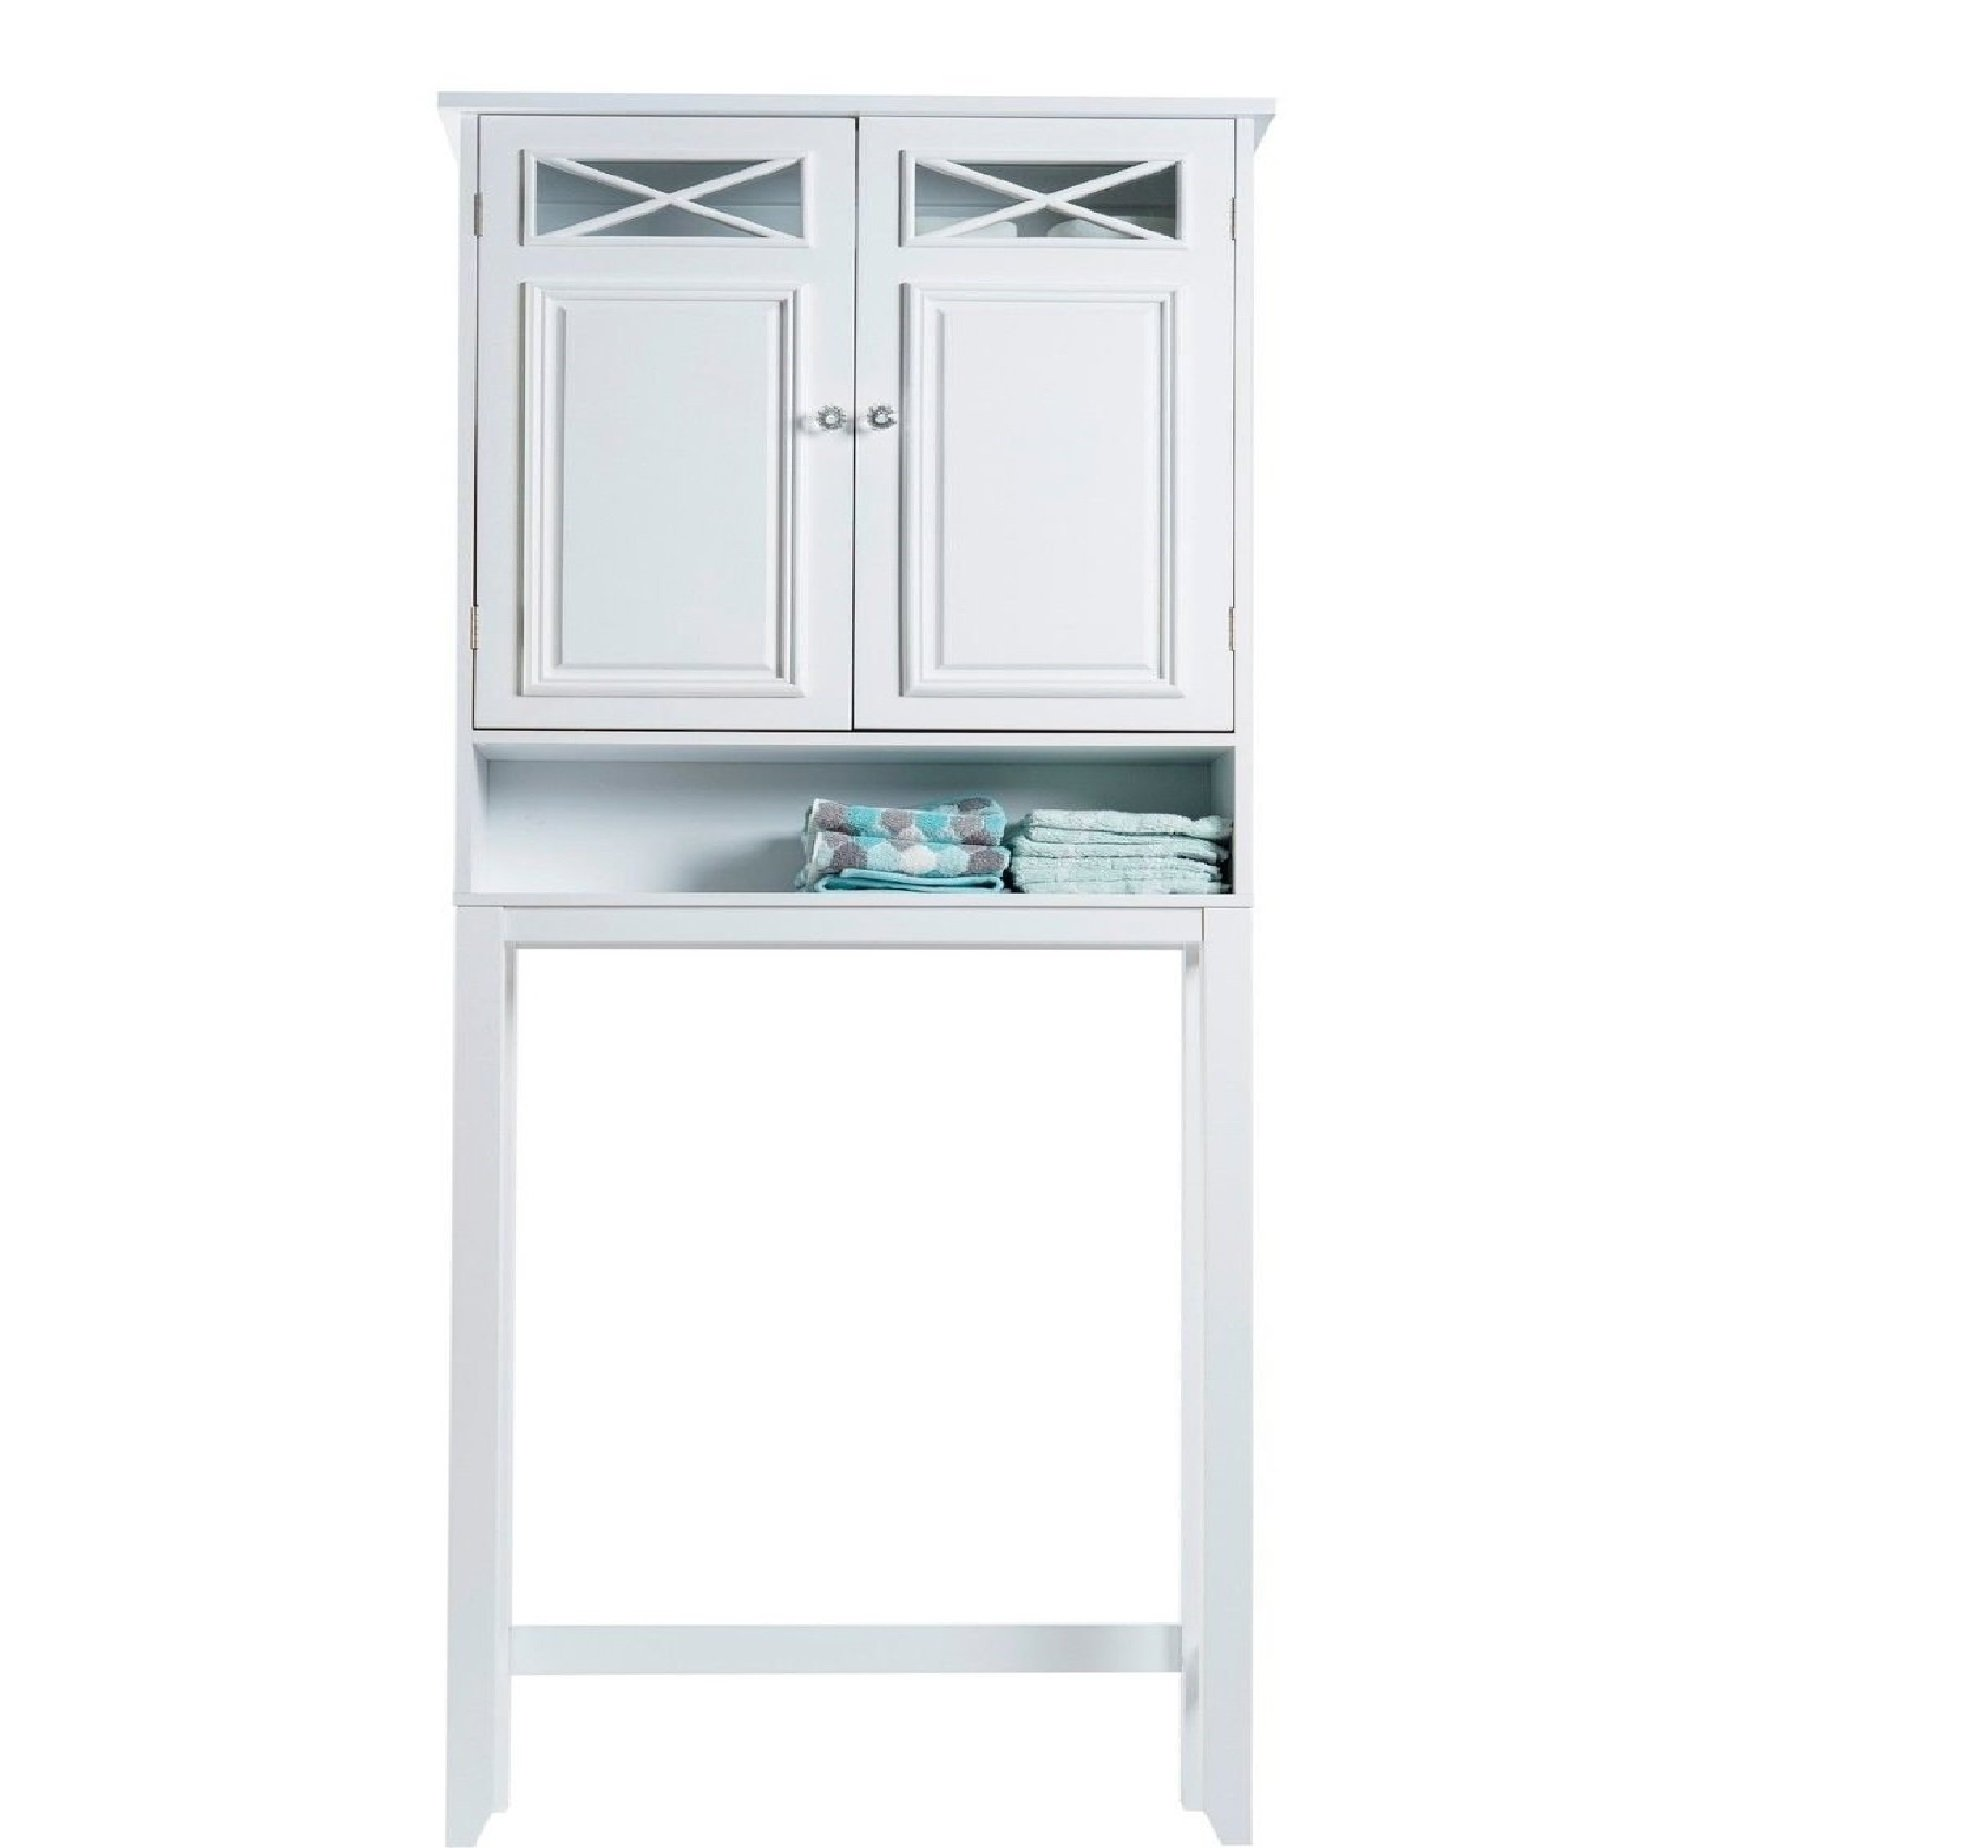 Space Saver Shelves Over the Toilet Shelving Storage Cabinet Bathroom Towels by Virgo